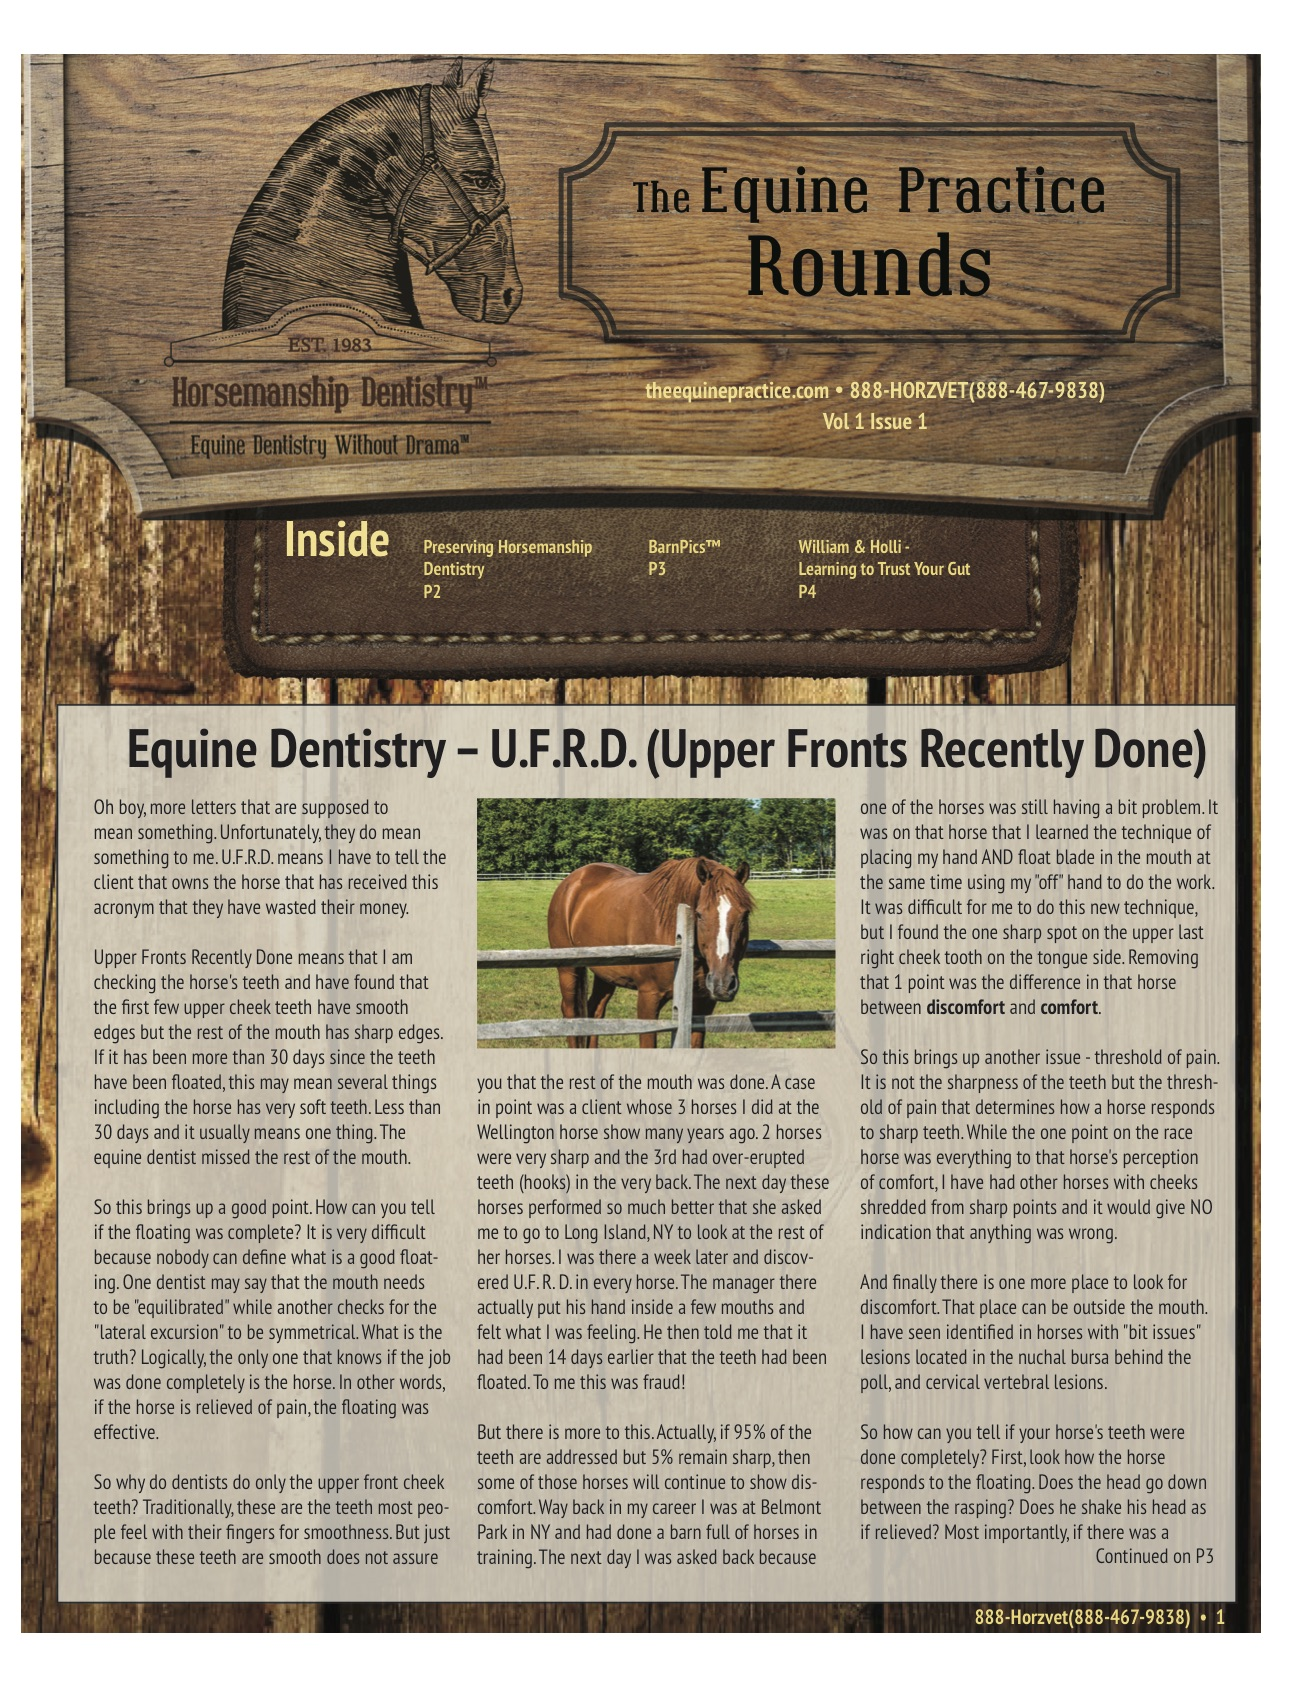 The Equine Practice Rounds™ Vol 1 Issue 1 page 1 of 4